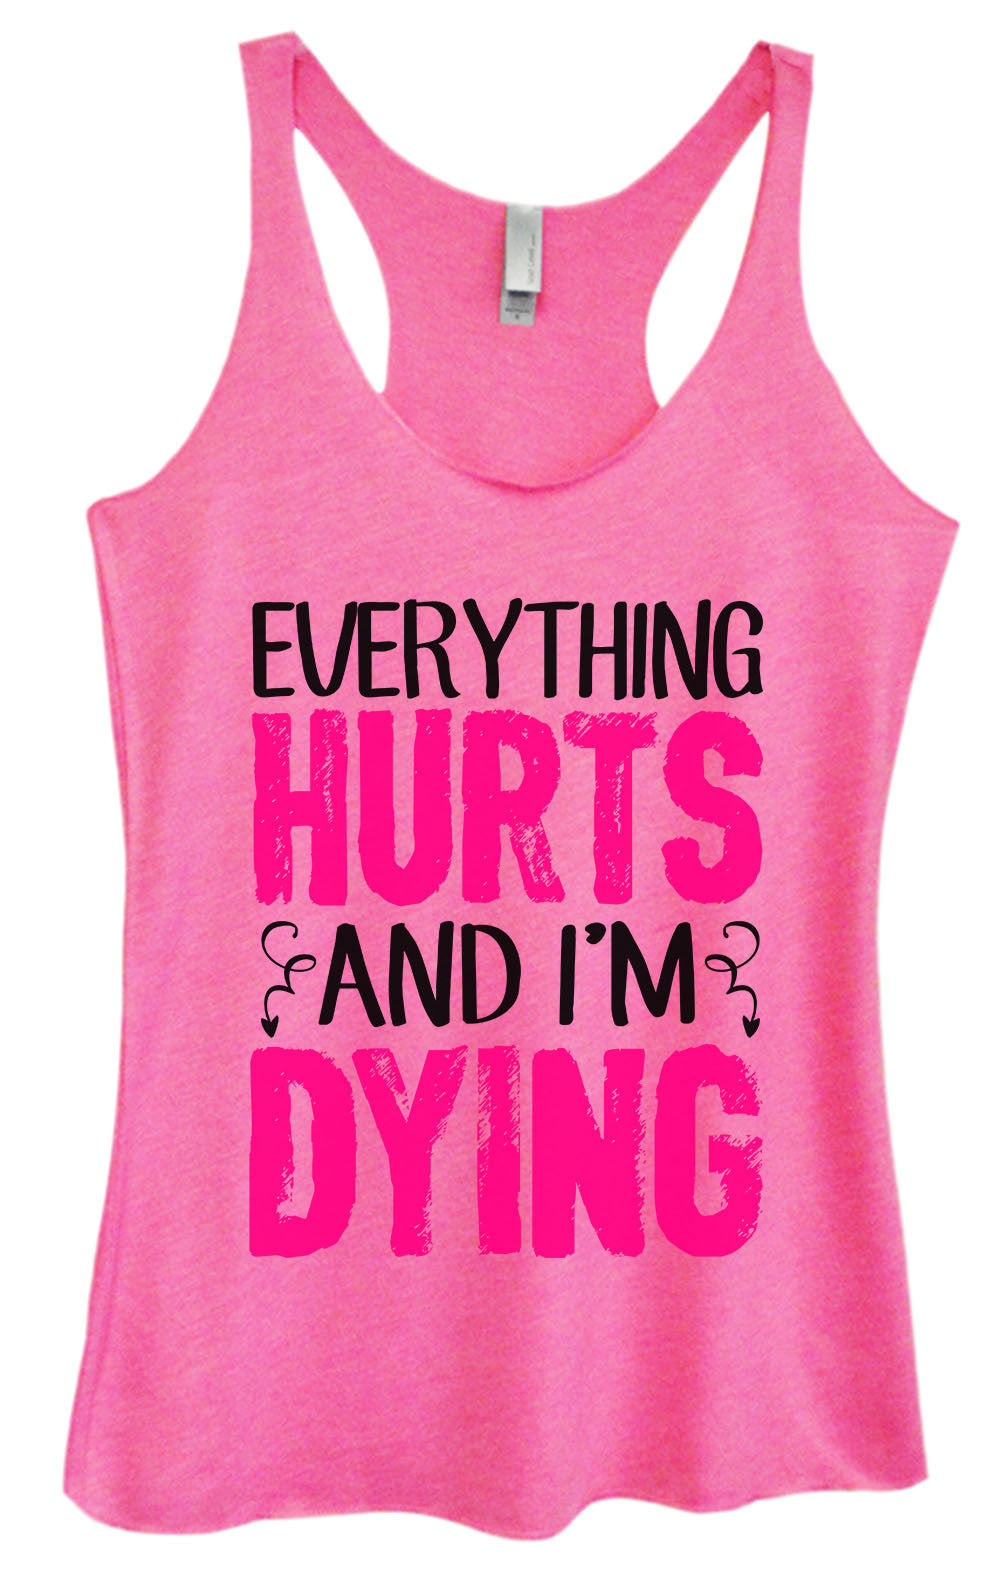 Womens Fashion Triblend Tank Top - Everything Hurts And I'm Dying - Tri-1431 - Funny Shirts Tank Tops Burnouts and Triblends  - 3